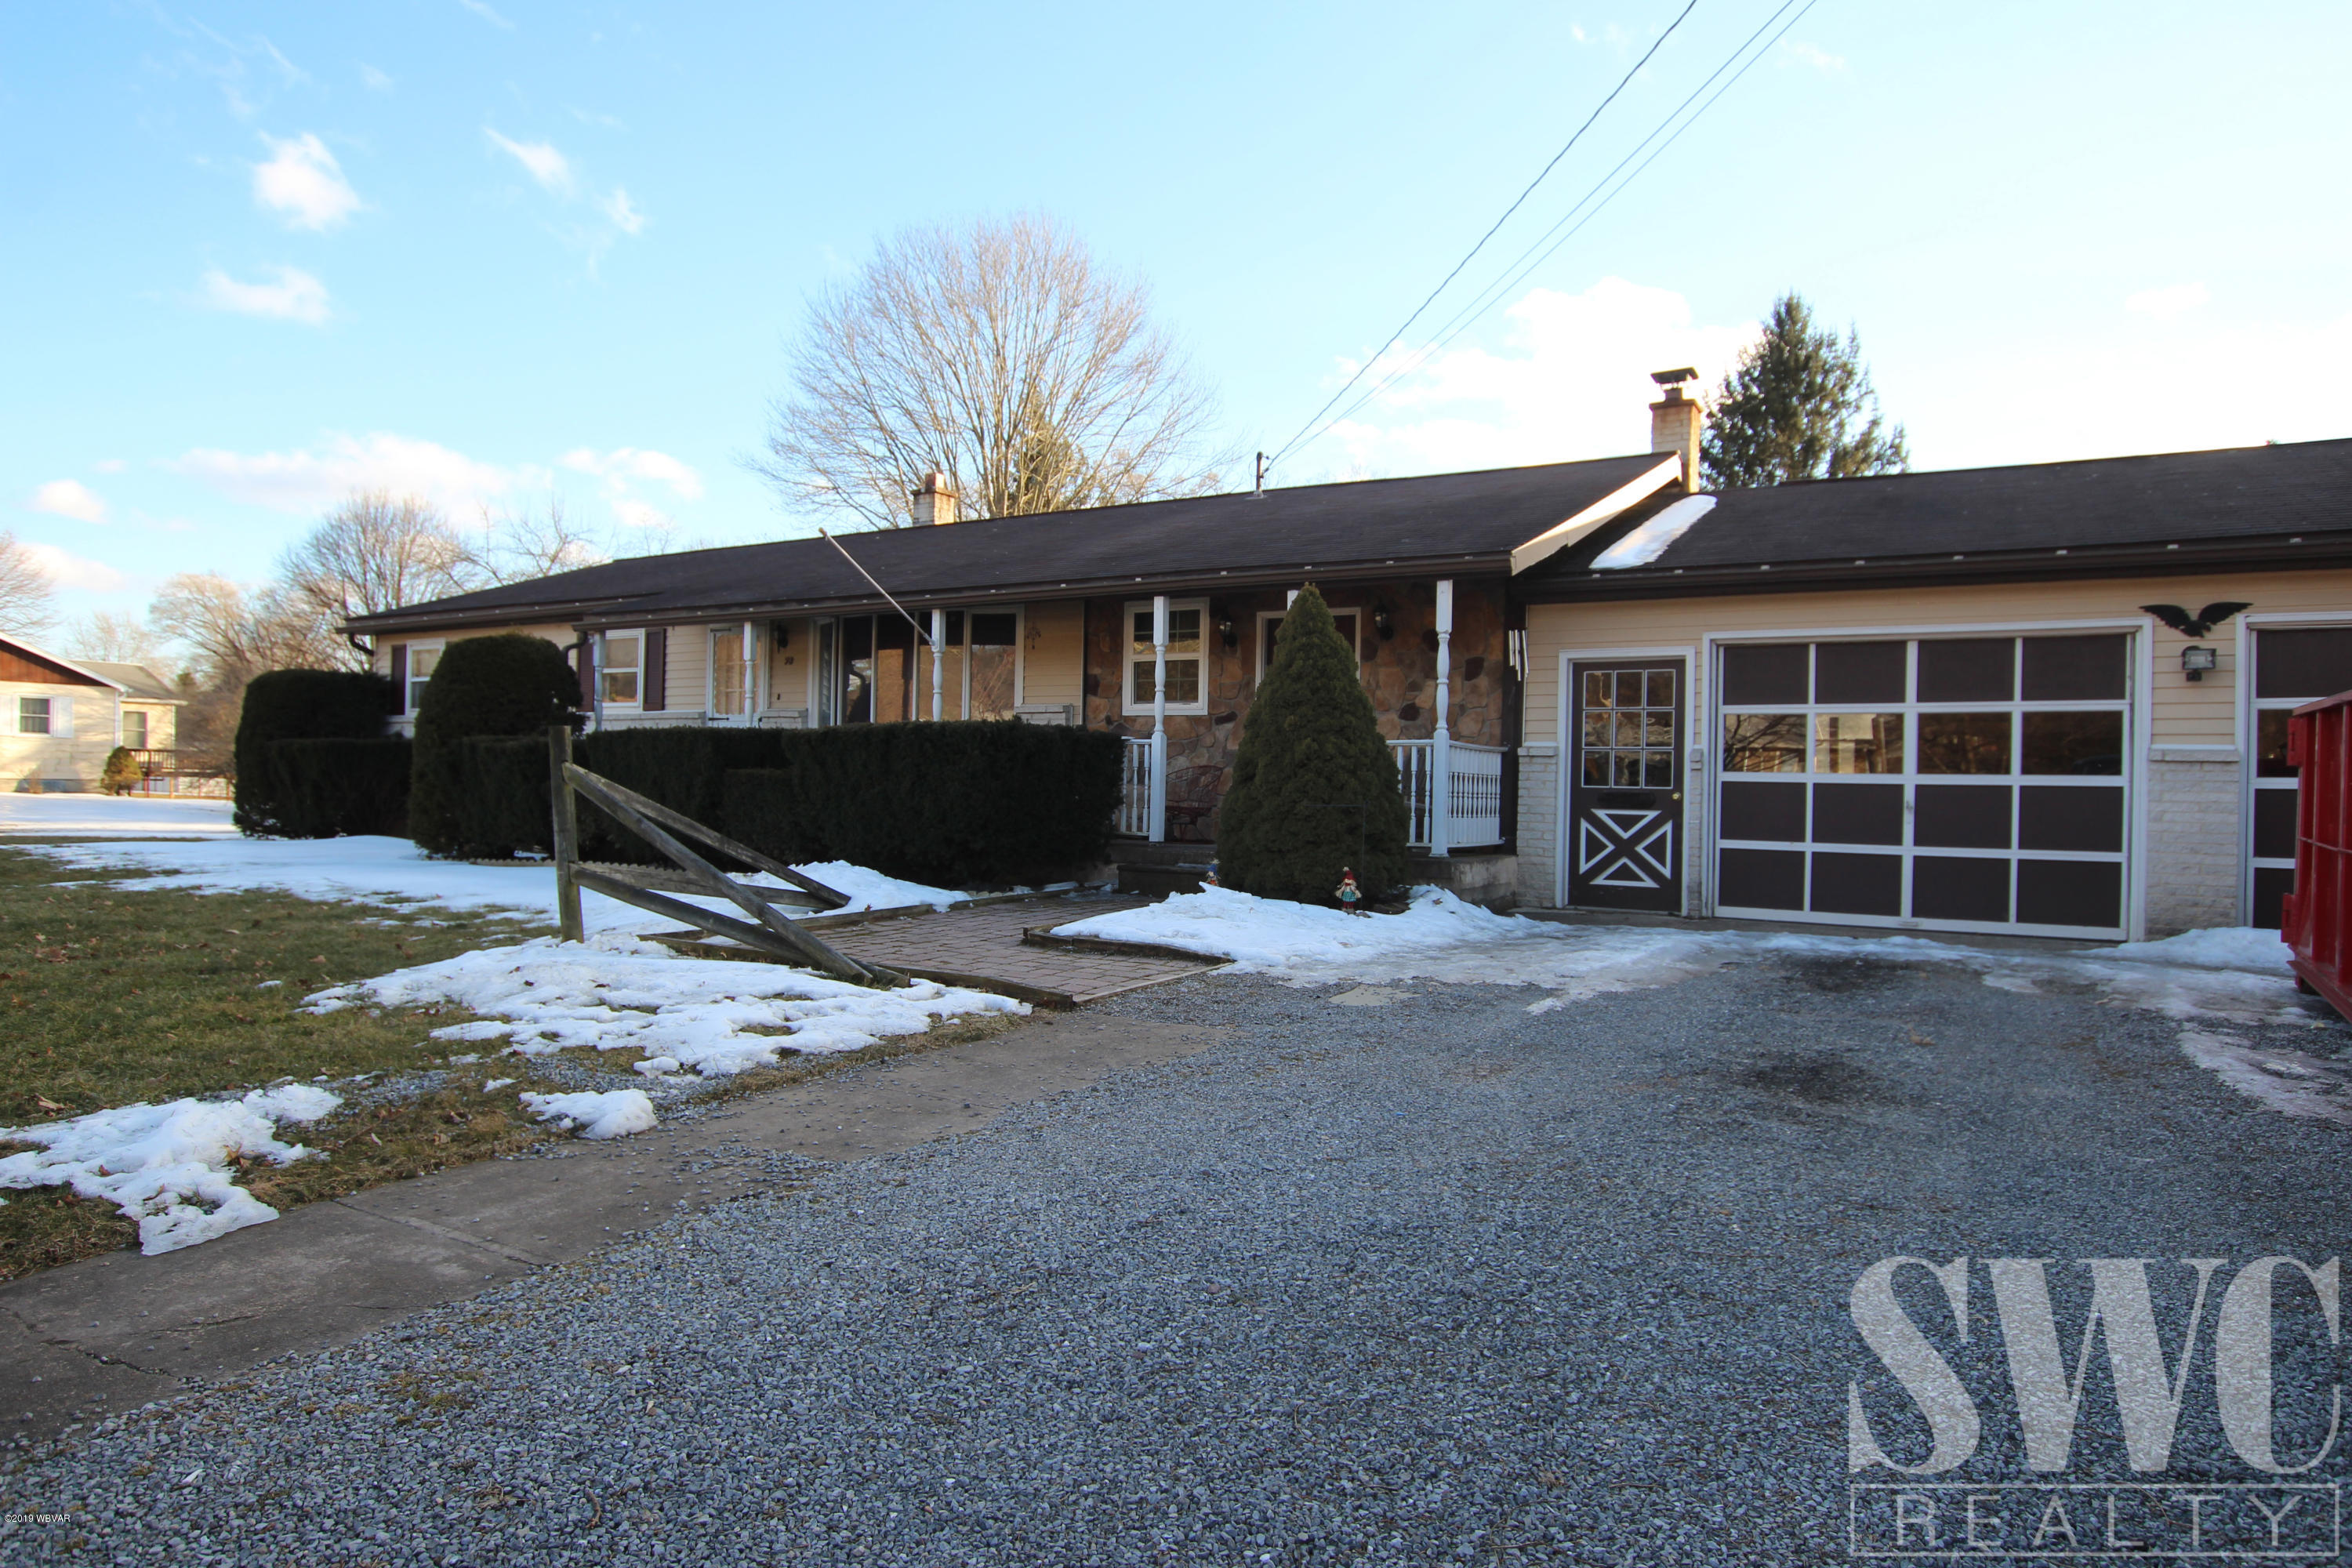 73 FISHER ROAD,Cogan Station,PA 17728,3 Bedrooms Bedrooms,1 BathroomBathrooms,Residential,FISHER,WB-86504